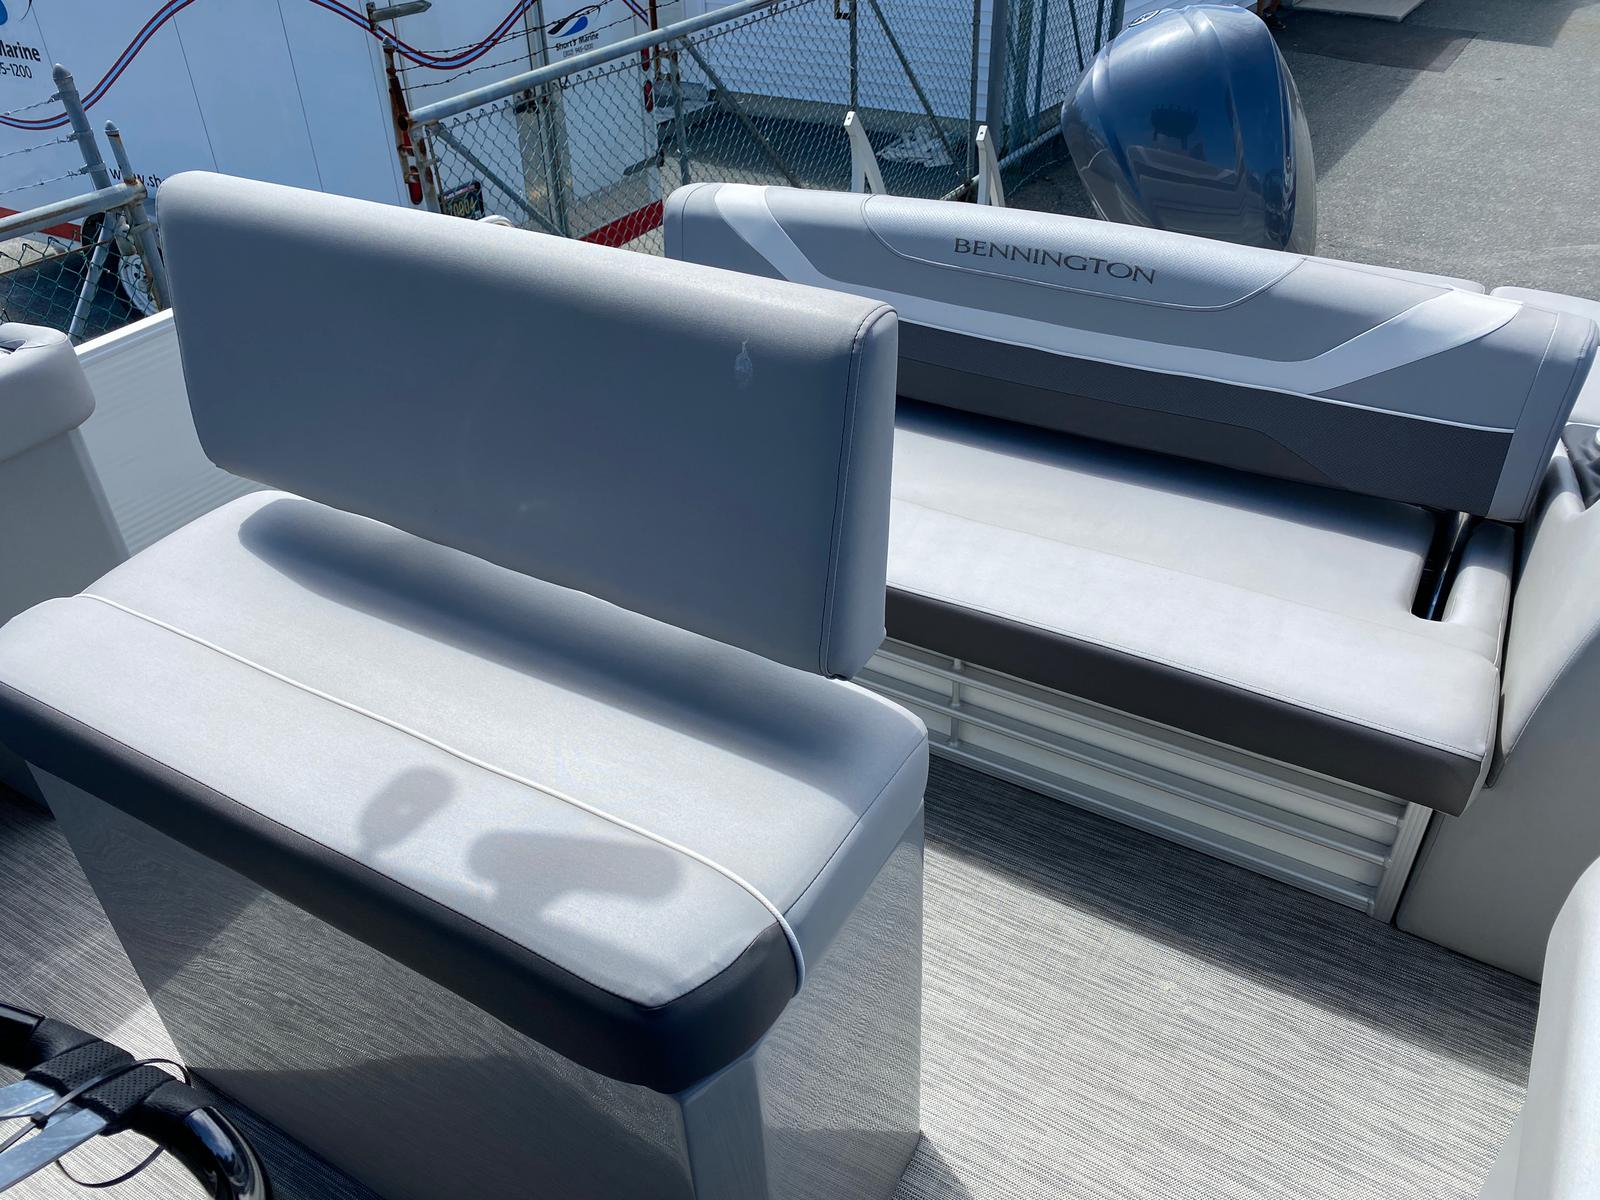 2020 Bennington boat for sale, model of the boat is 23 SCCTTX Center Console Tri-Toon ESP Performance Package & Image # 6 of 12